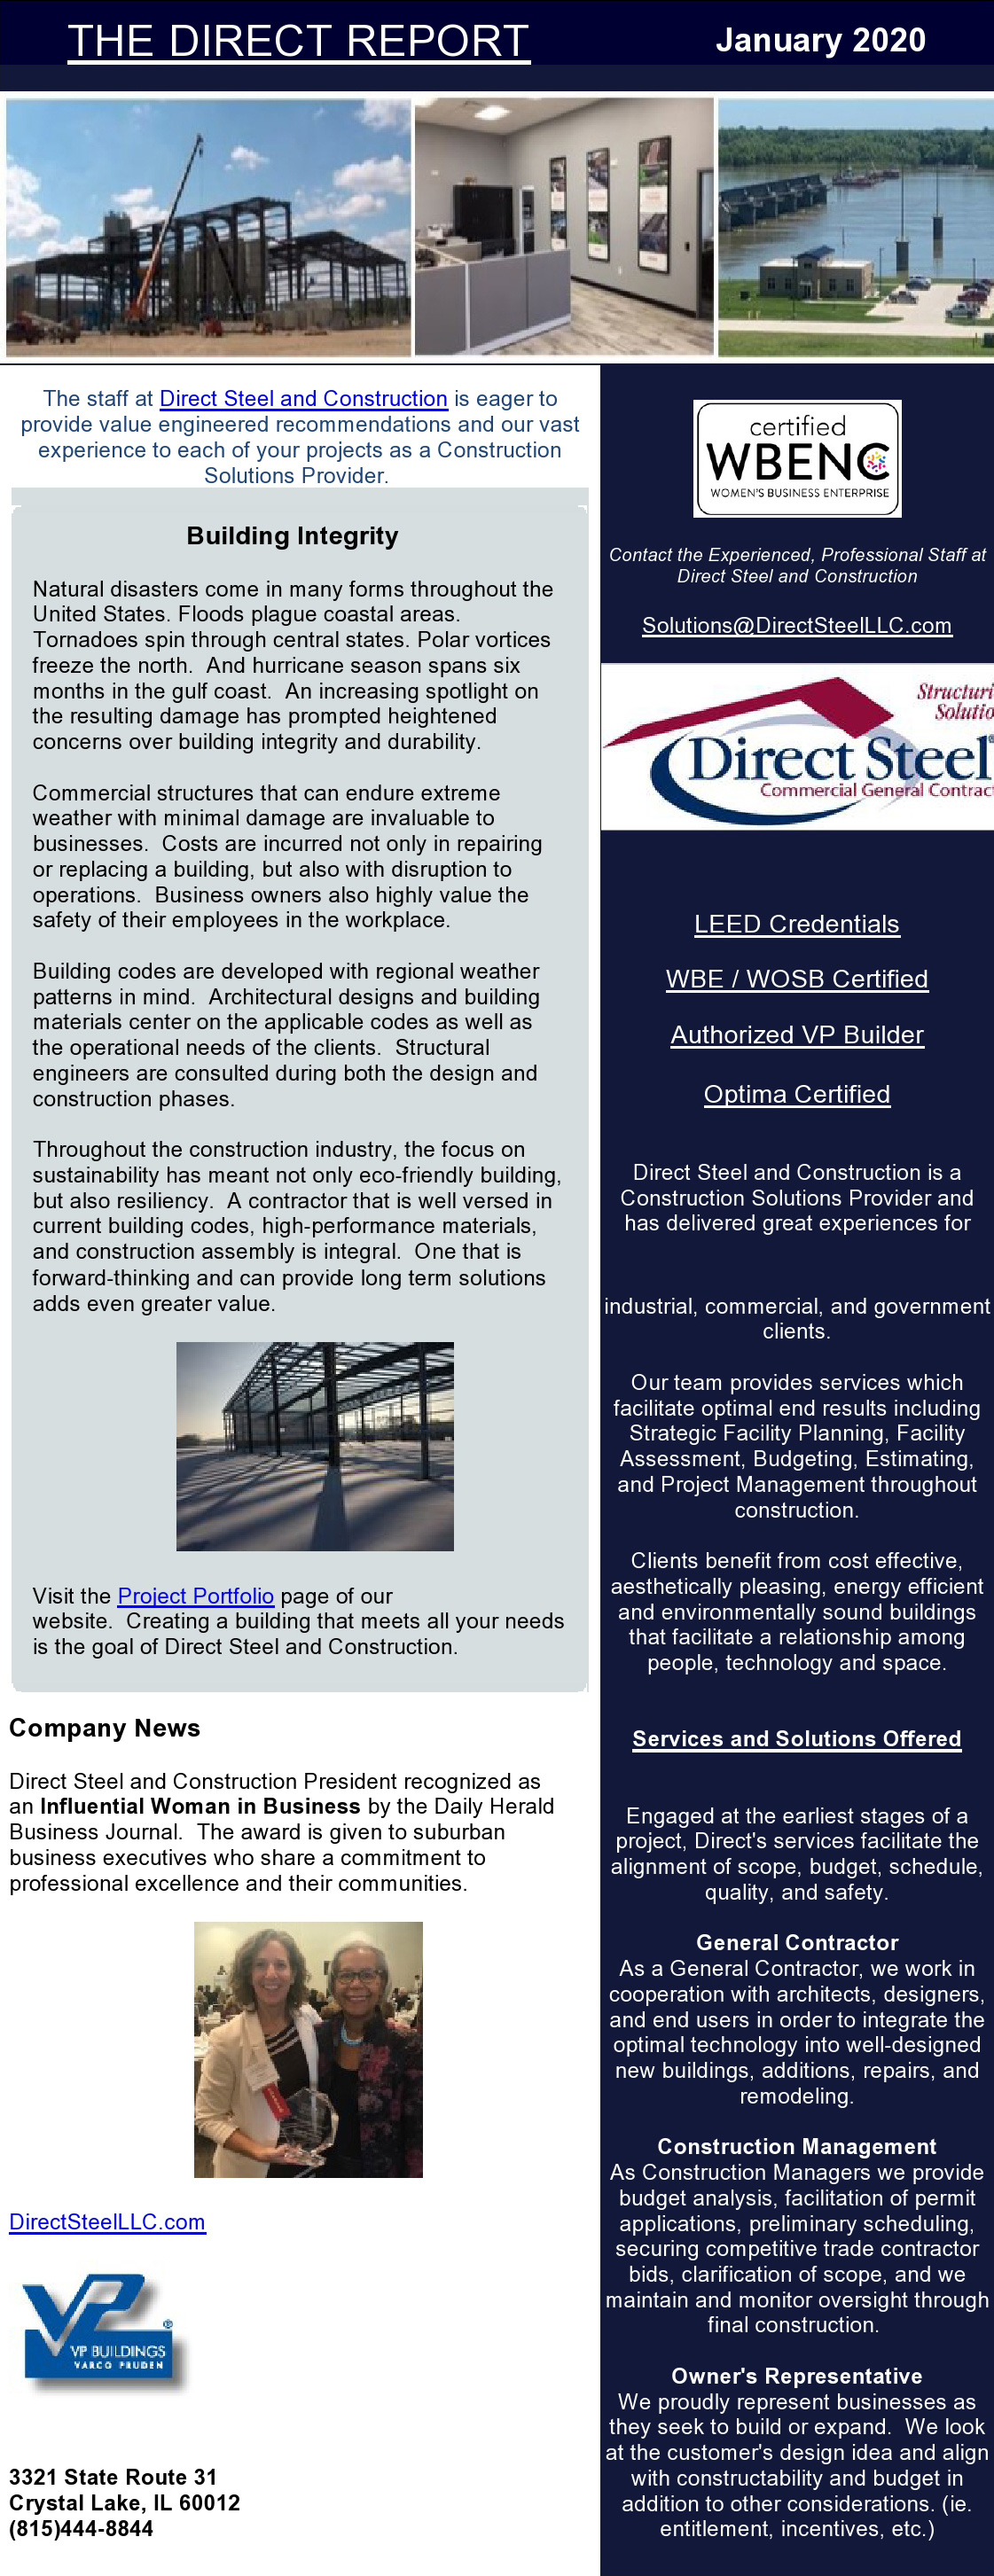 January Quarterly Newsletter